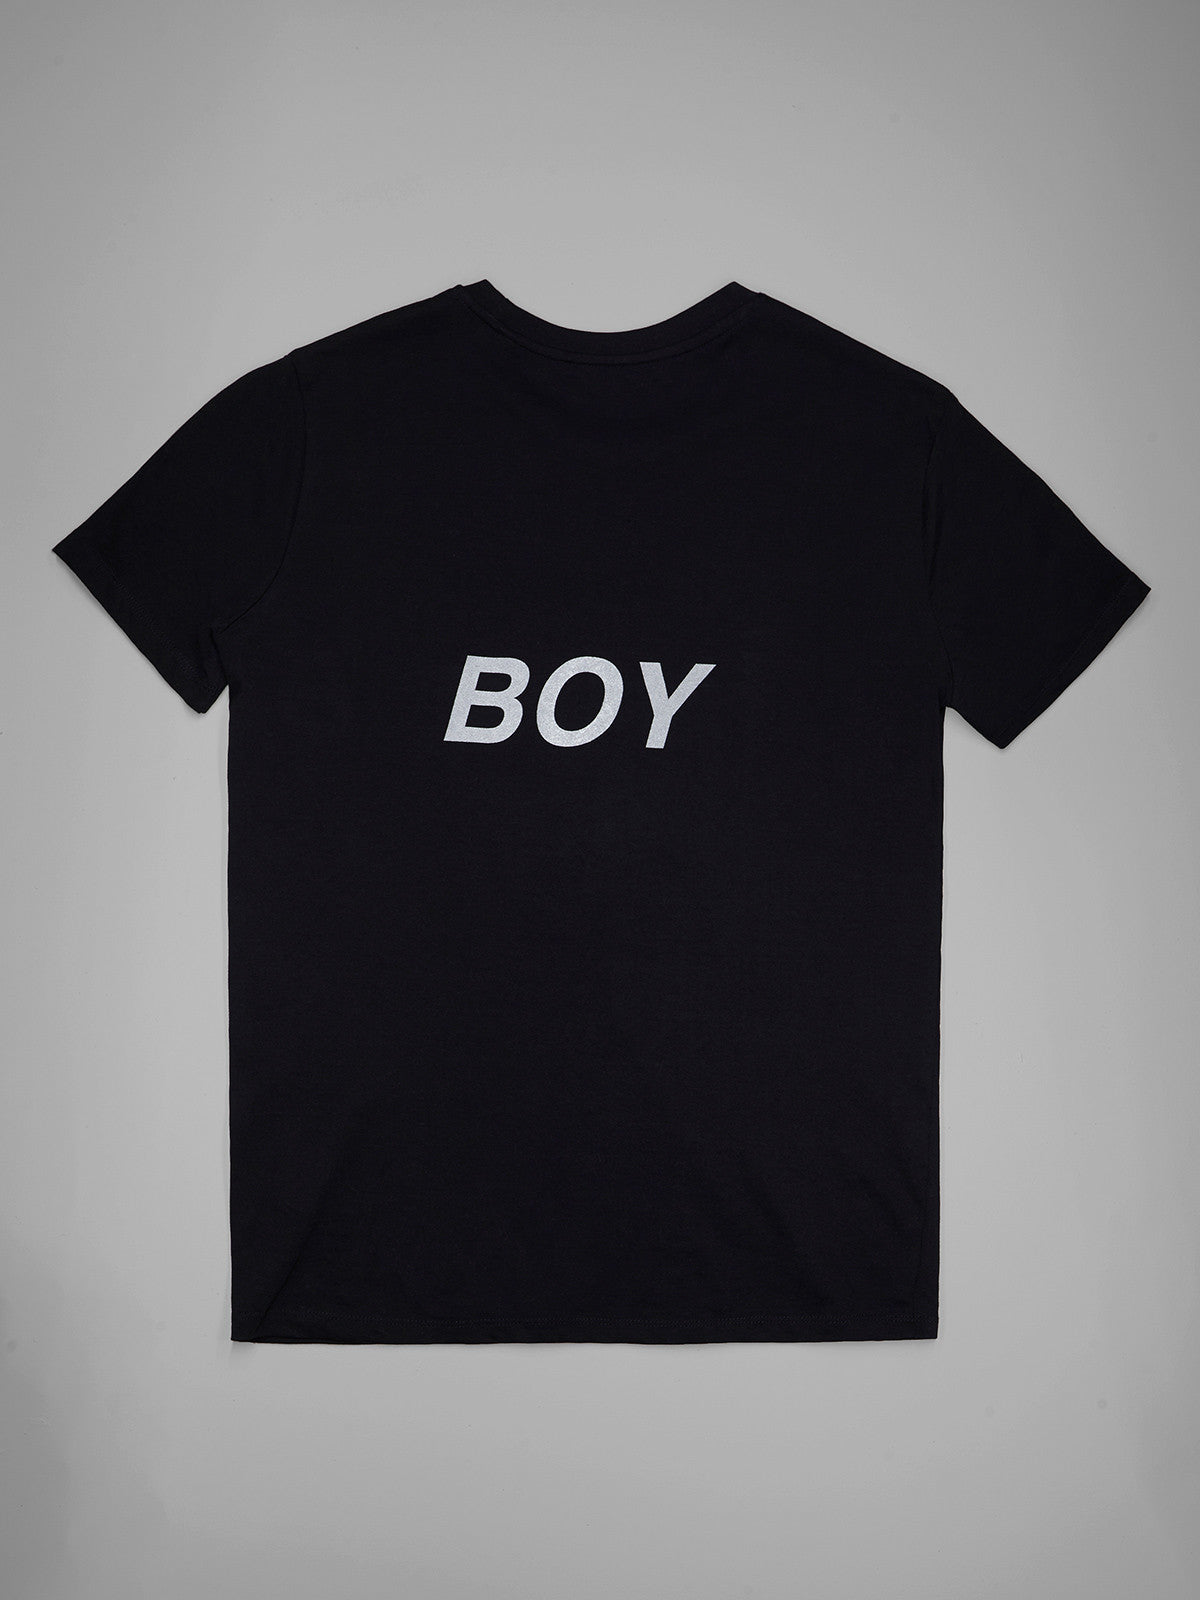 Cotton RENT BOY T-Shirt